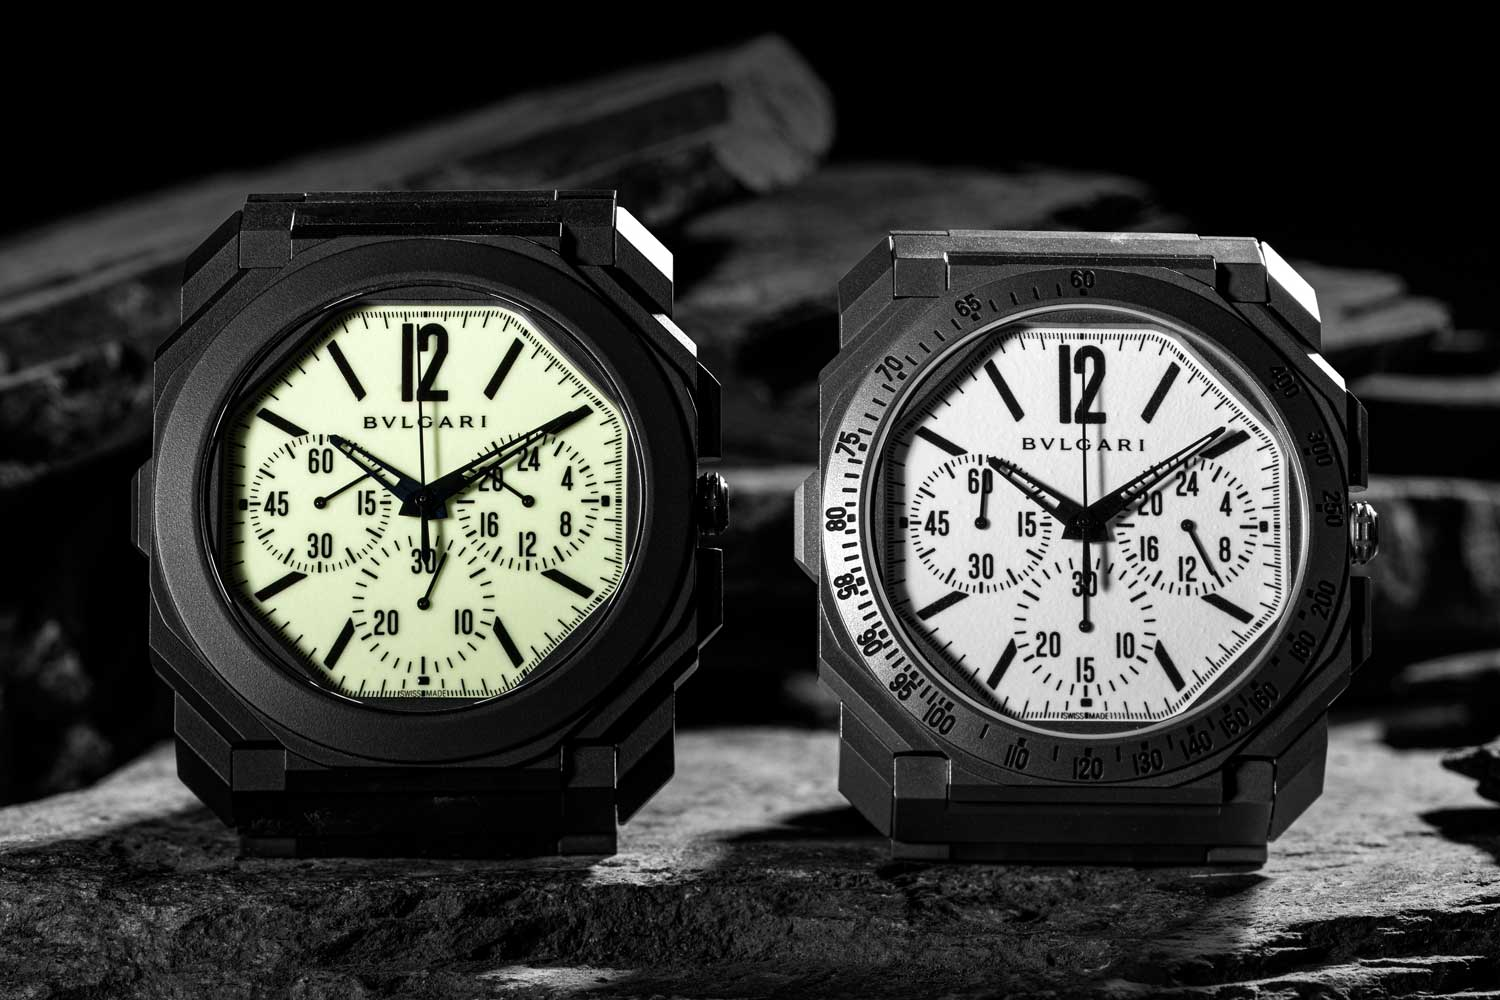 """Bvlgari Octo Finissimo Ceramic Chronograph GMT """"Nuclear Option"""" for Revolution and The Rake (left) and Bvlgari Octo Finissimo Chronograph GMT """"White Light'' launched in 2020. (© Revolution)"""